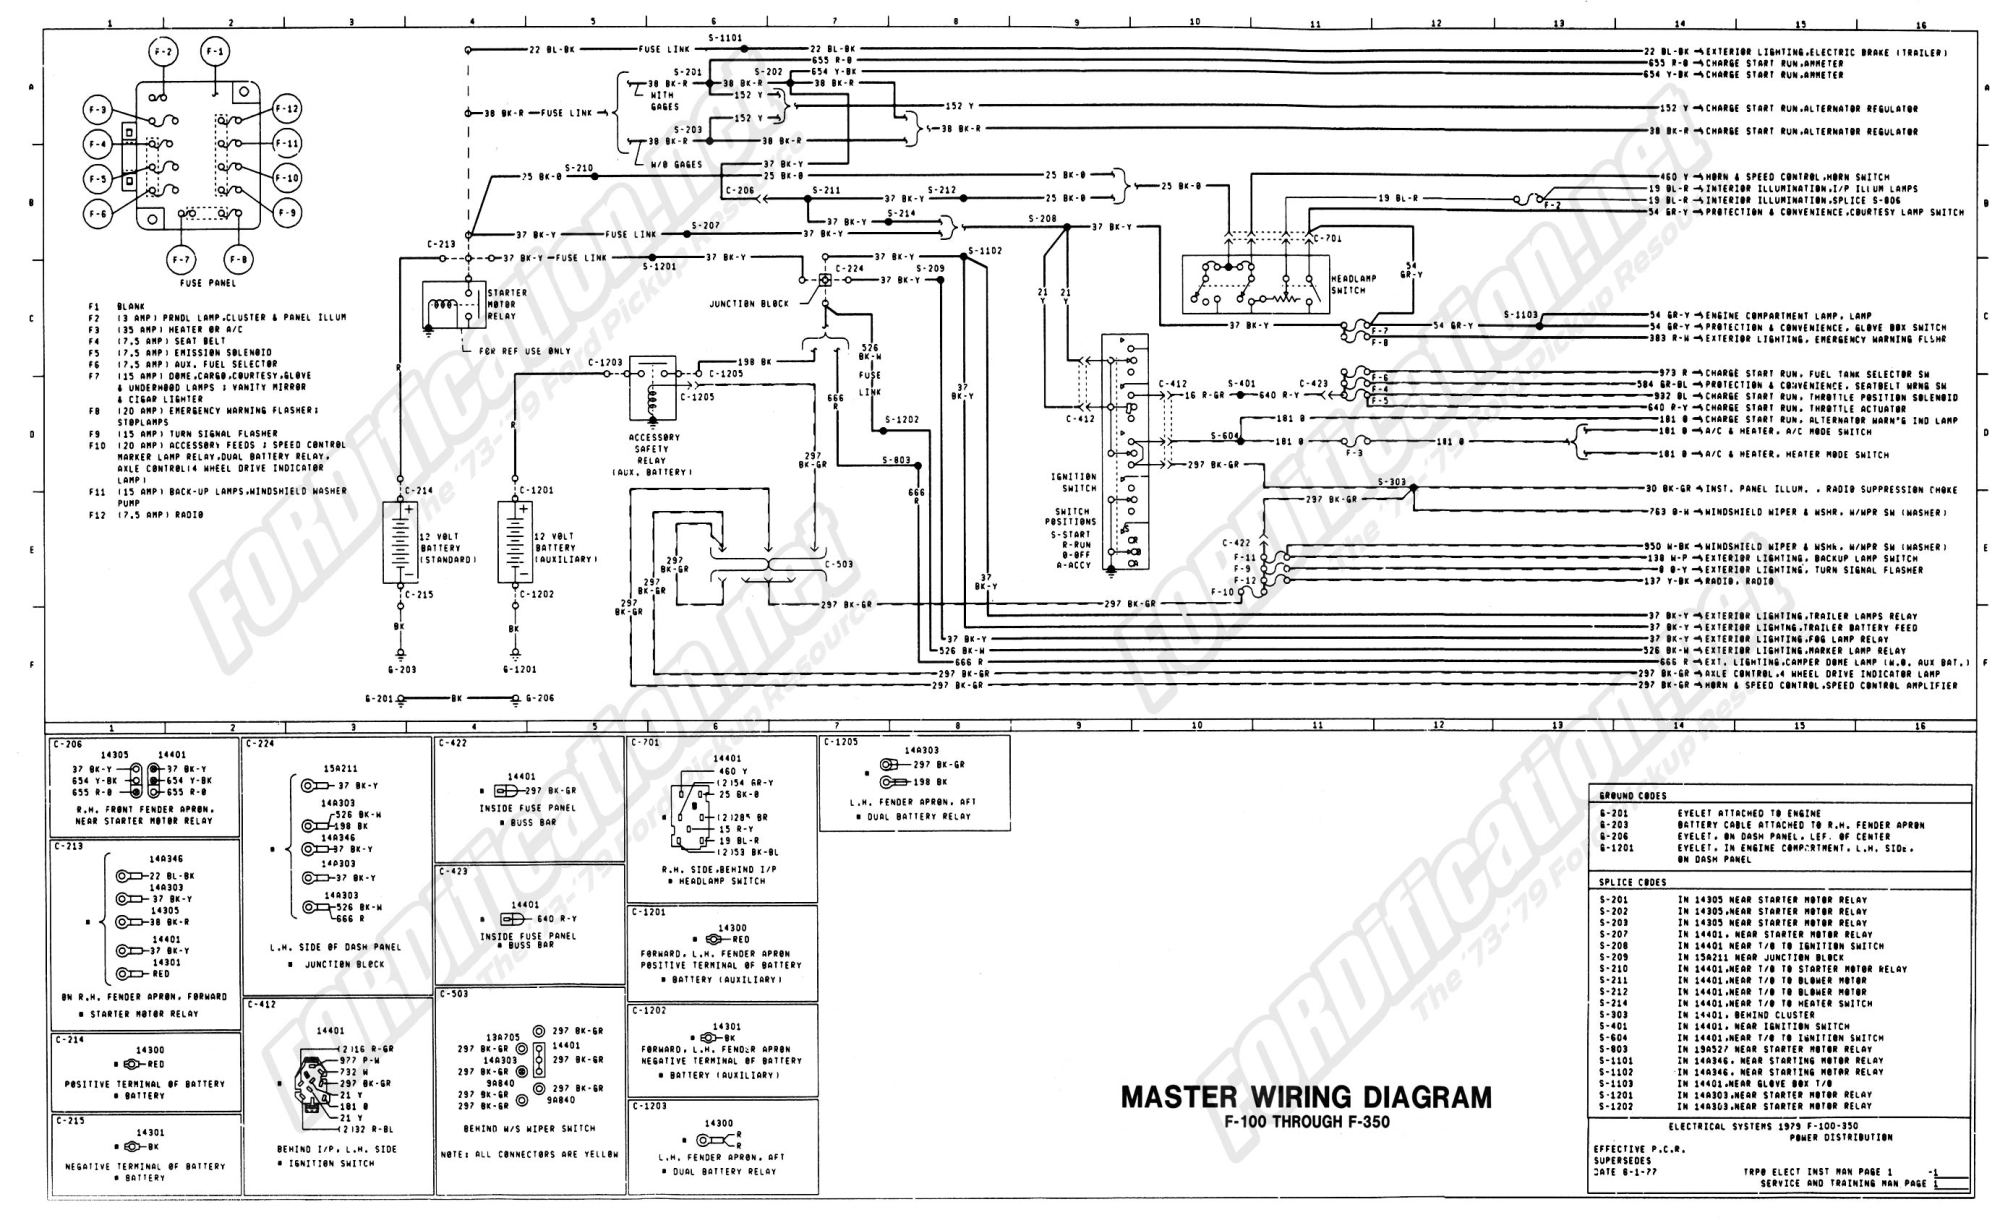 hight resolution of 1983 ford motorhome econoline fuel wiring diagram wiring library 1983 ford econoline mobile home 1983 ford